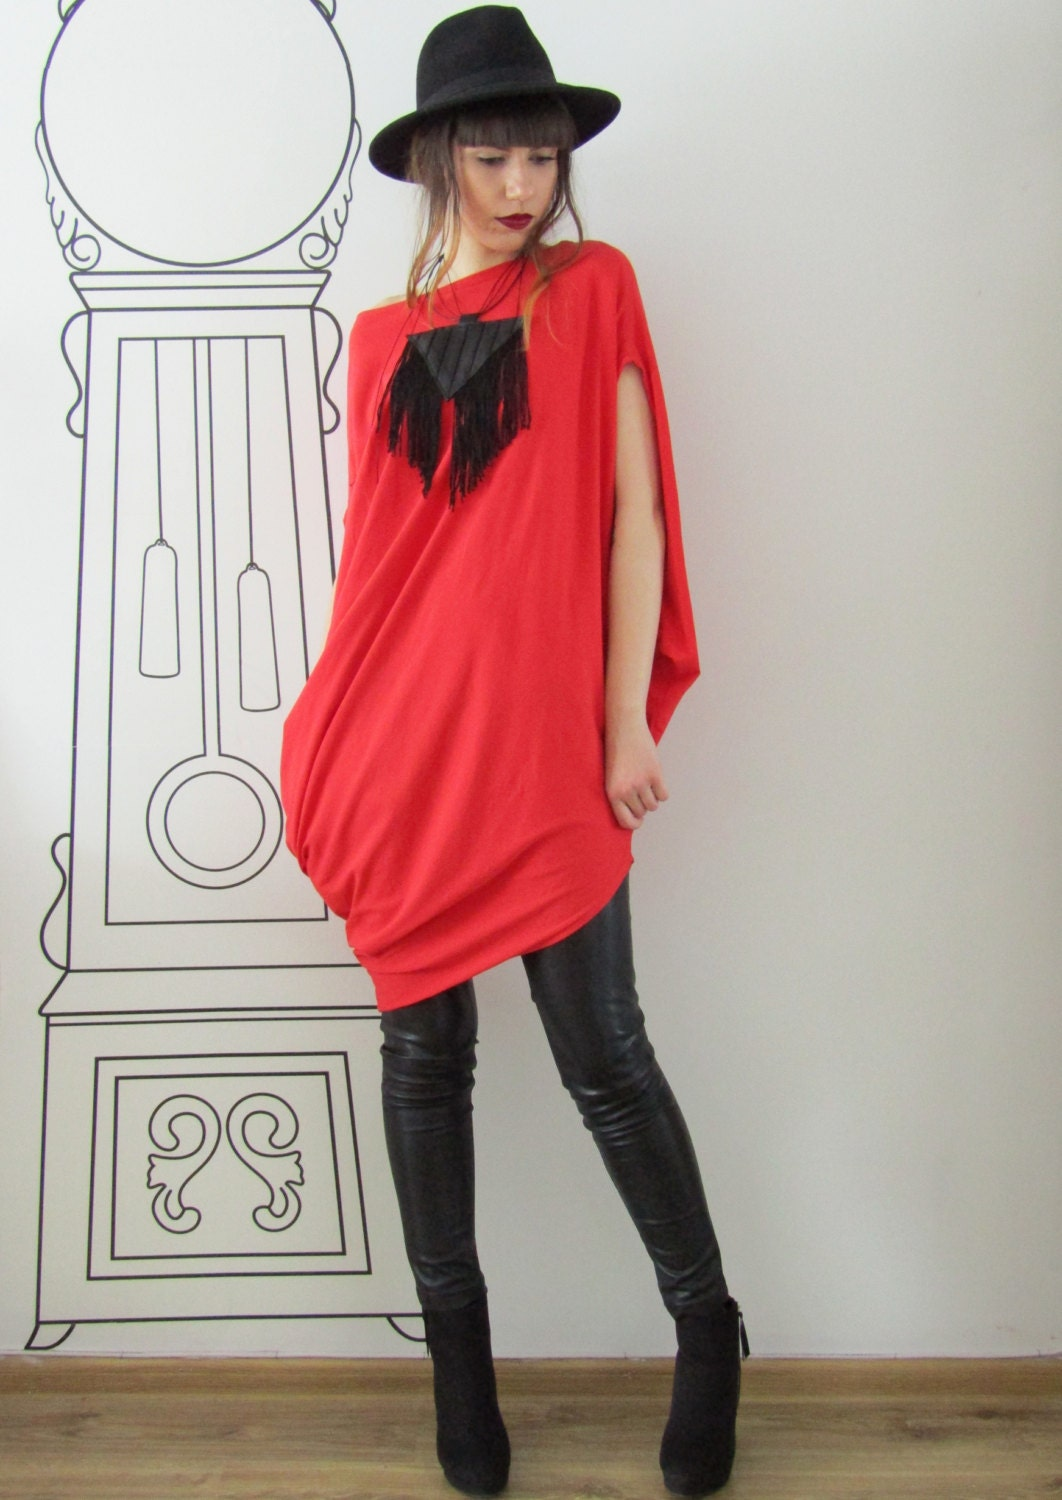 ec6acaf31e6 Extravagant Asymmetrical Red Tunic Top / T712